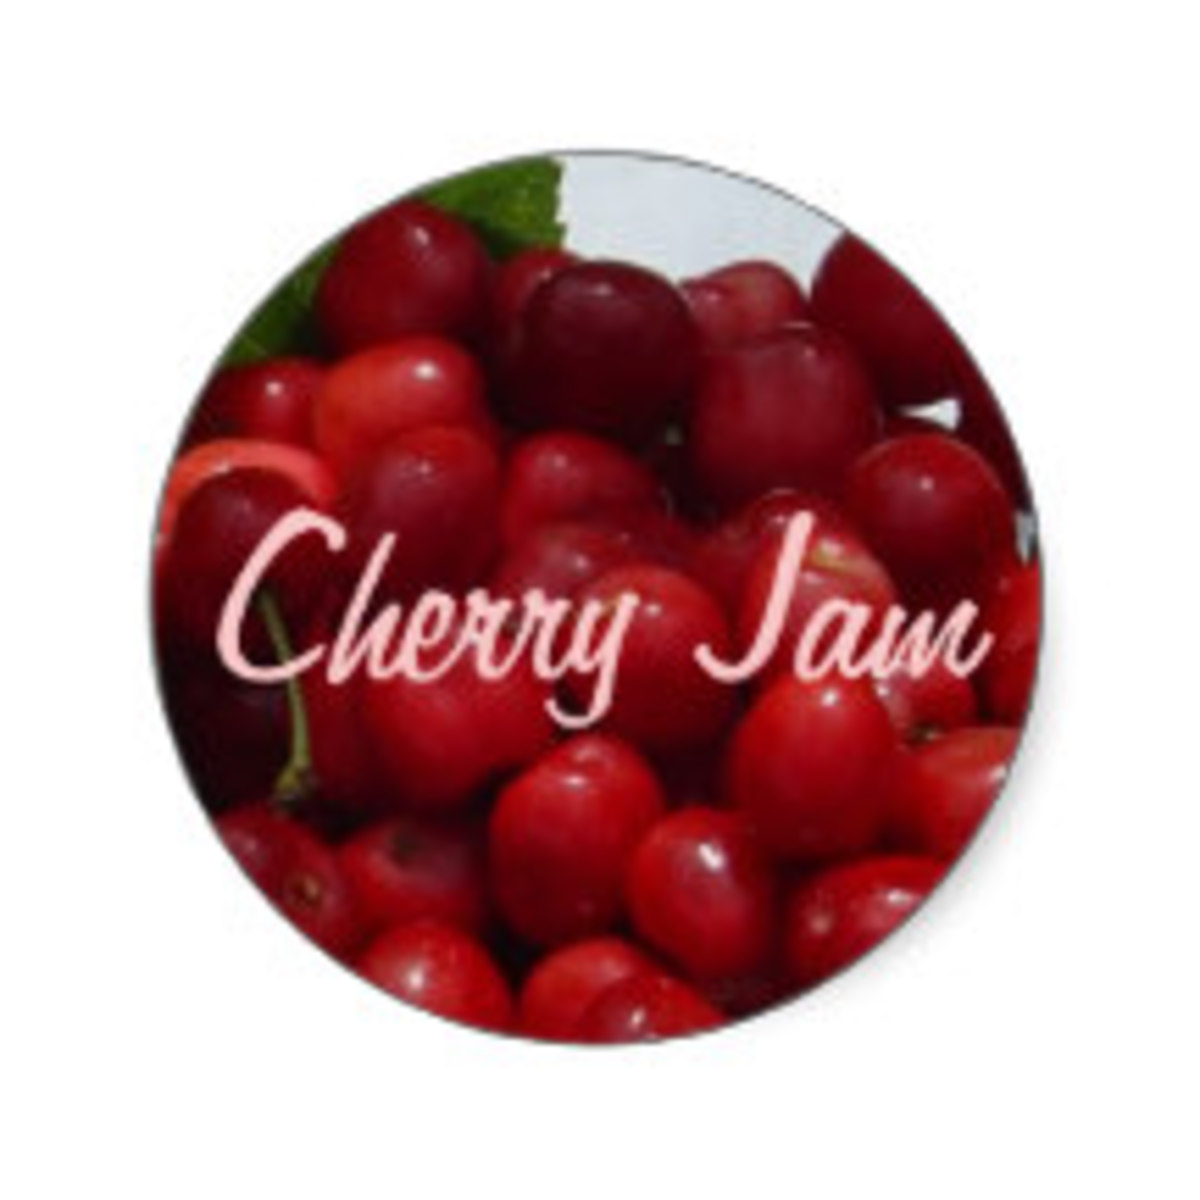 Find a range of beautiful jam labels for your home made jam. you can personalize them by adding your own text.